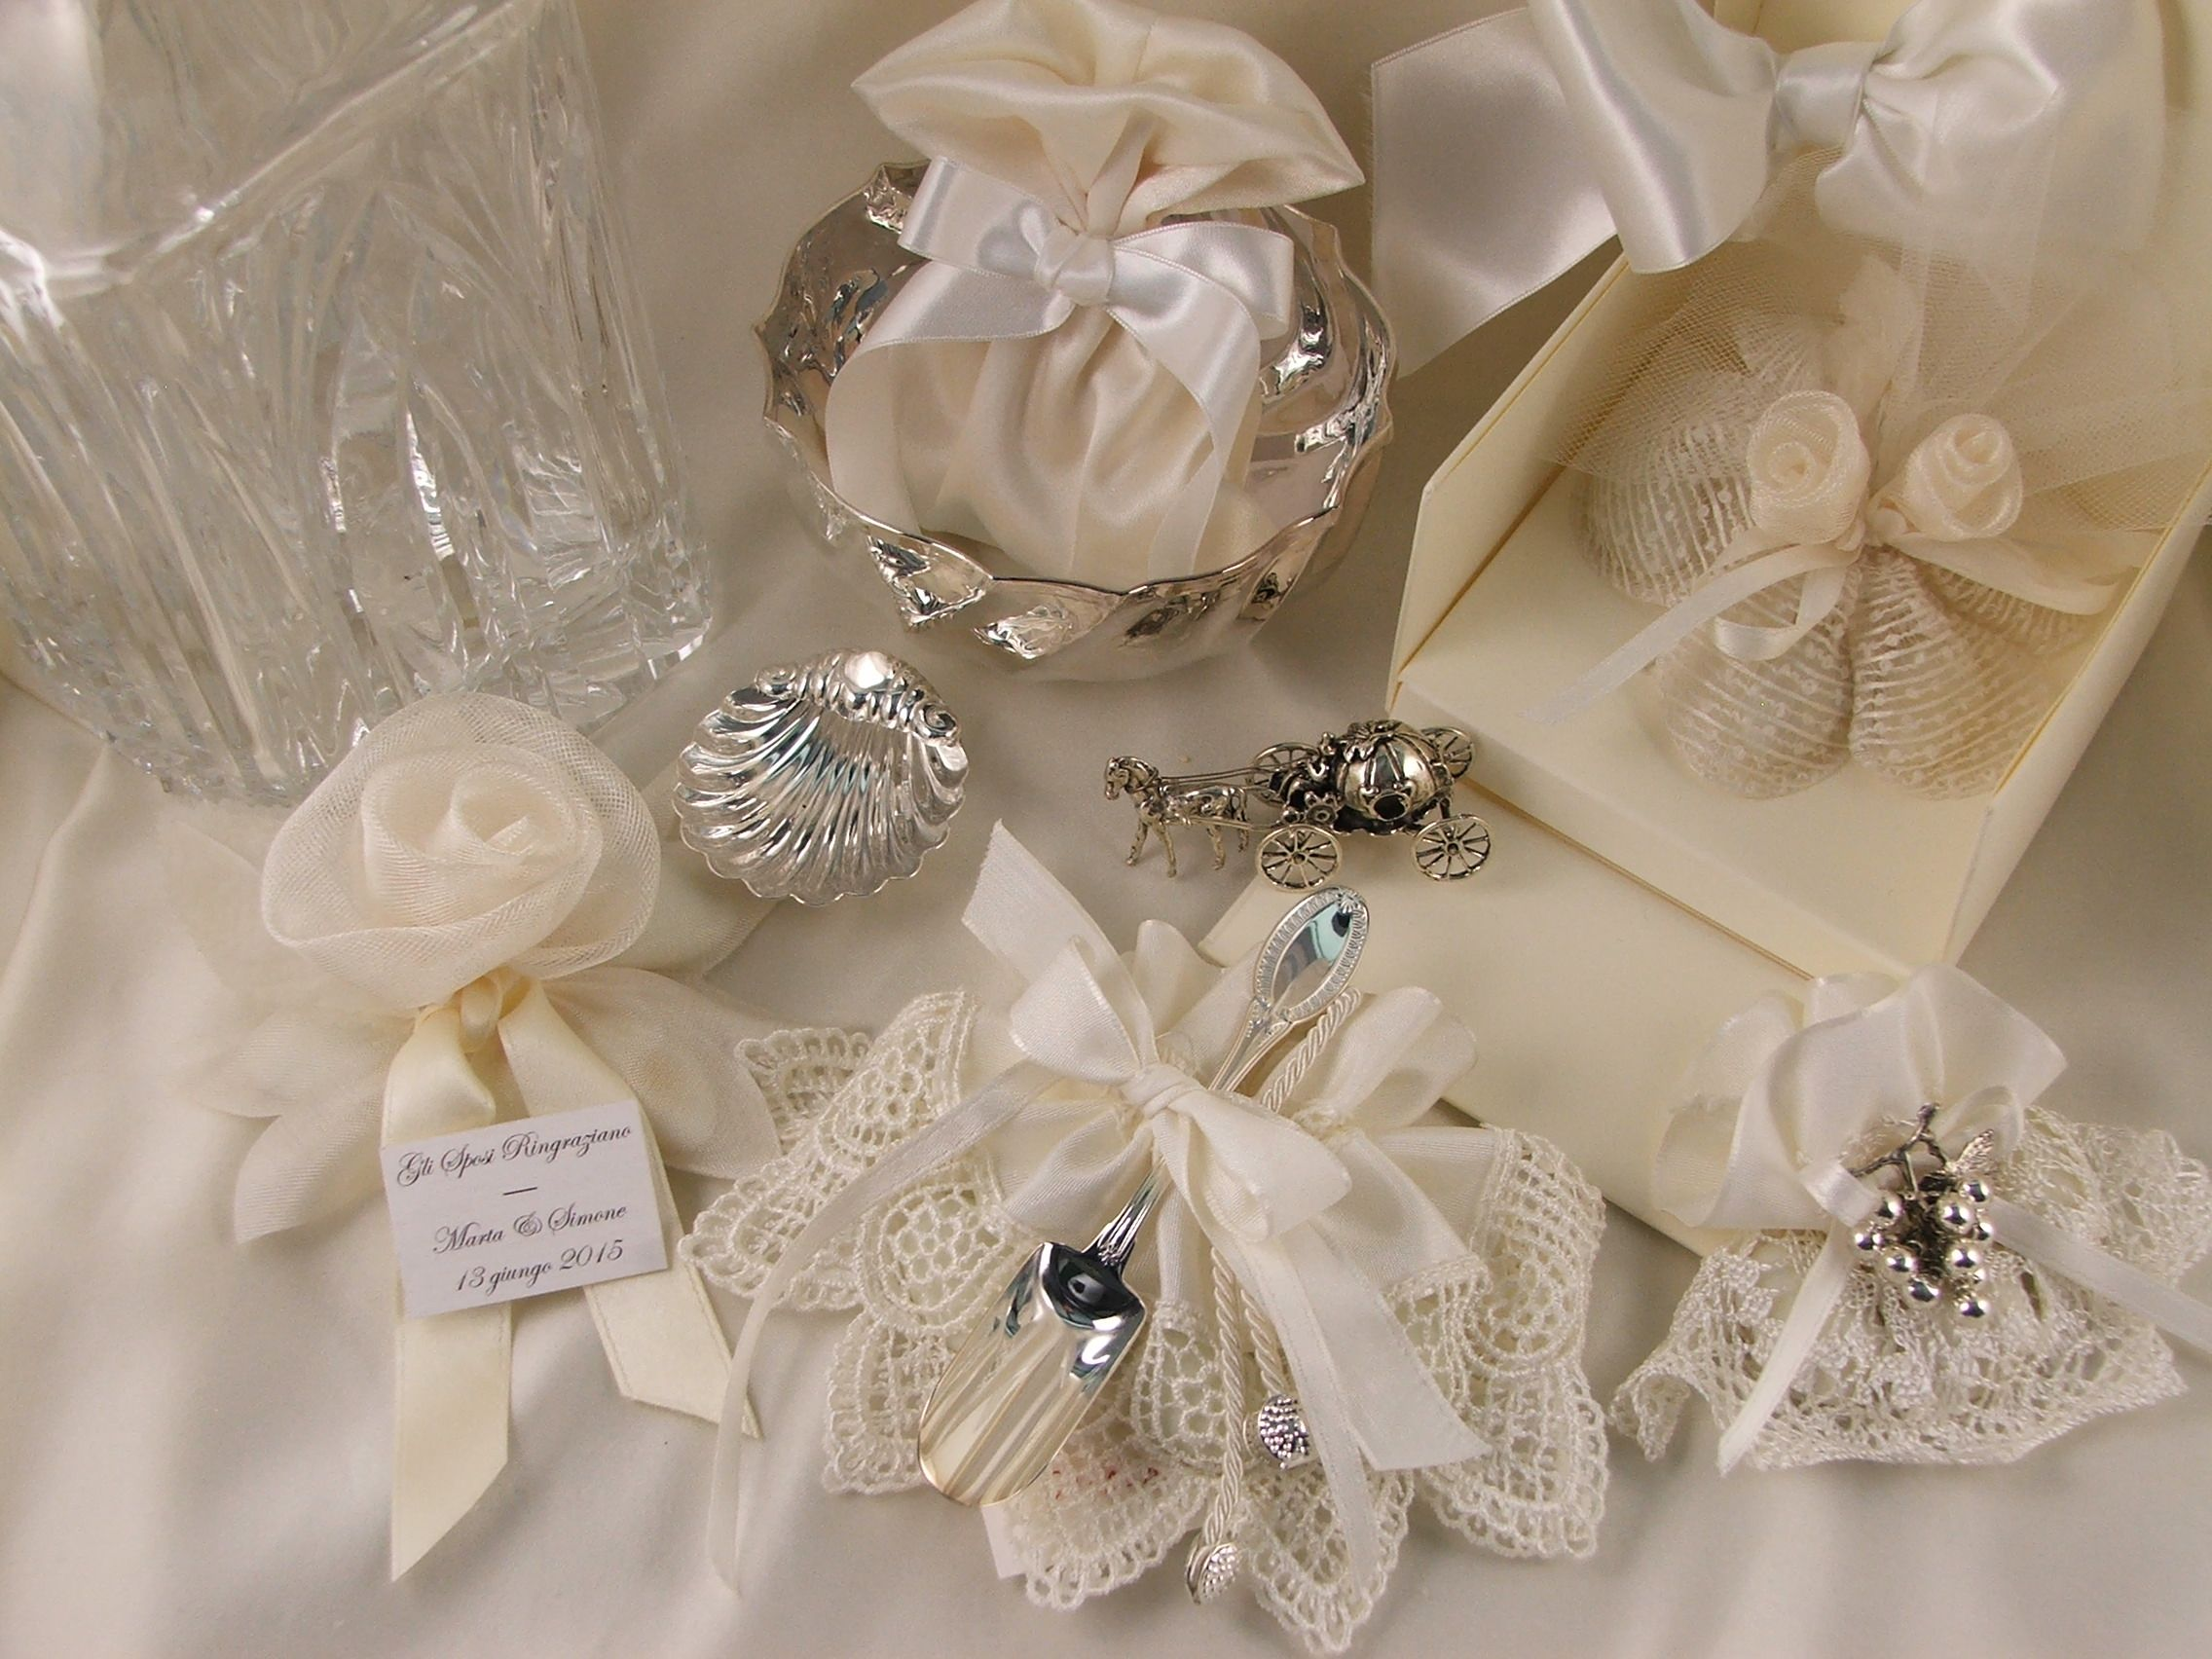 Oniere Hand Crafted In The Italian Tradition By Www Theoniere Traditional Wedding Giftstraditional